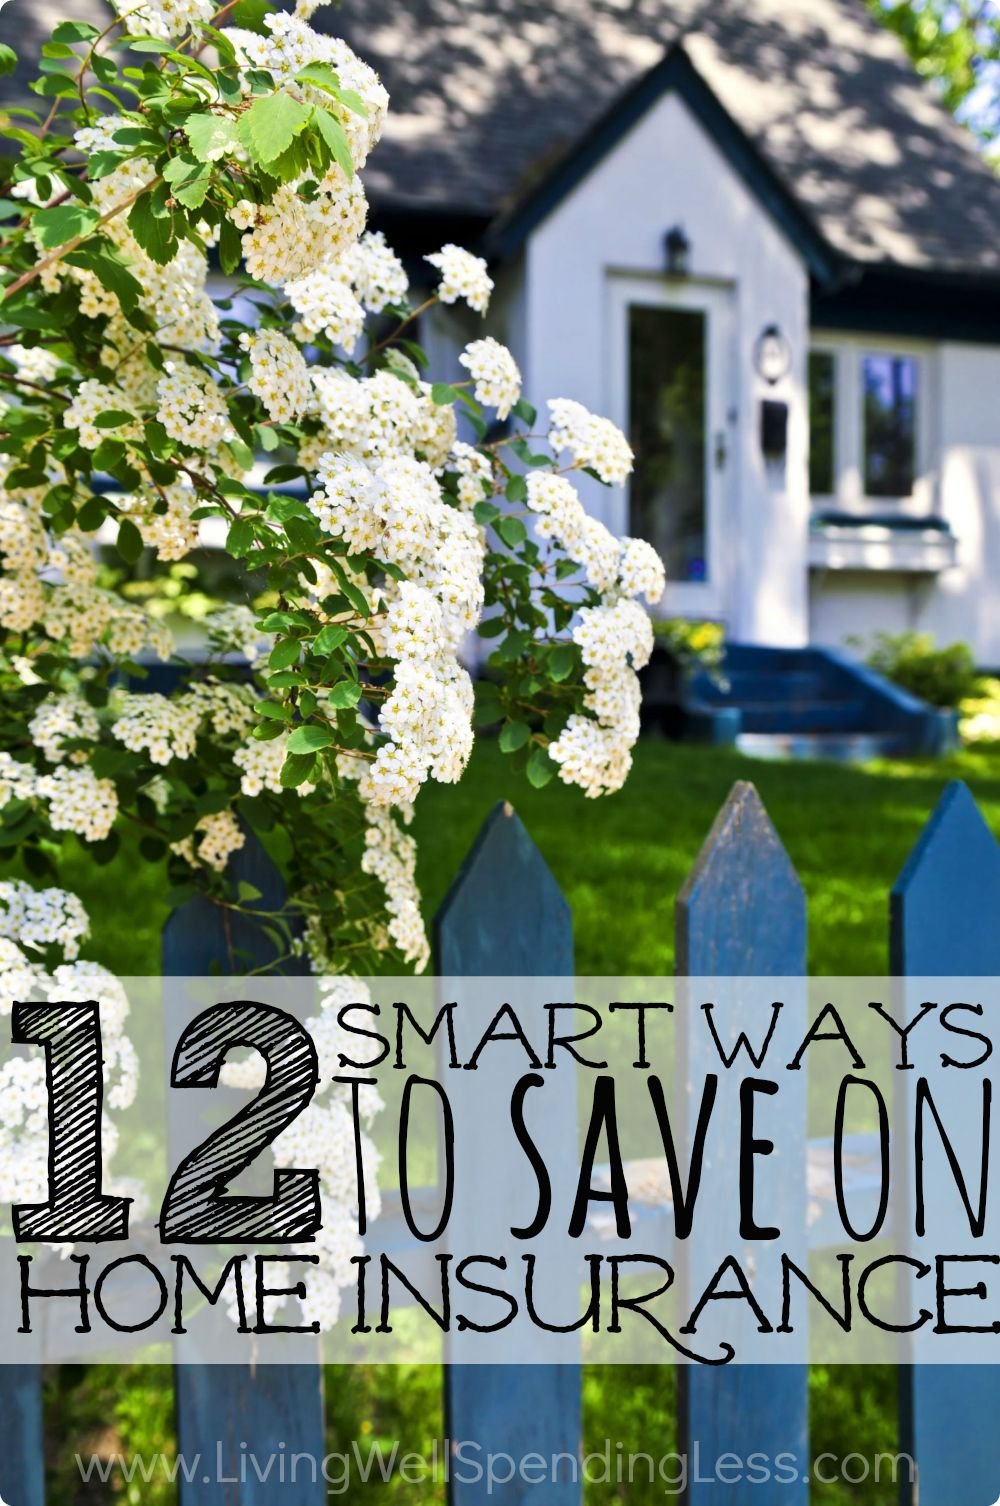 12 Smart Ways To Save On Home Insurance Home Insurance